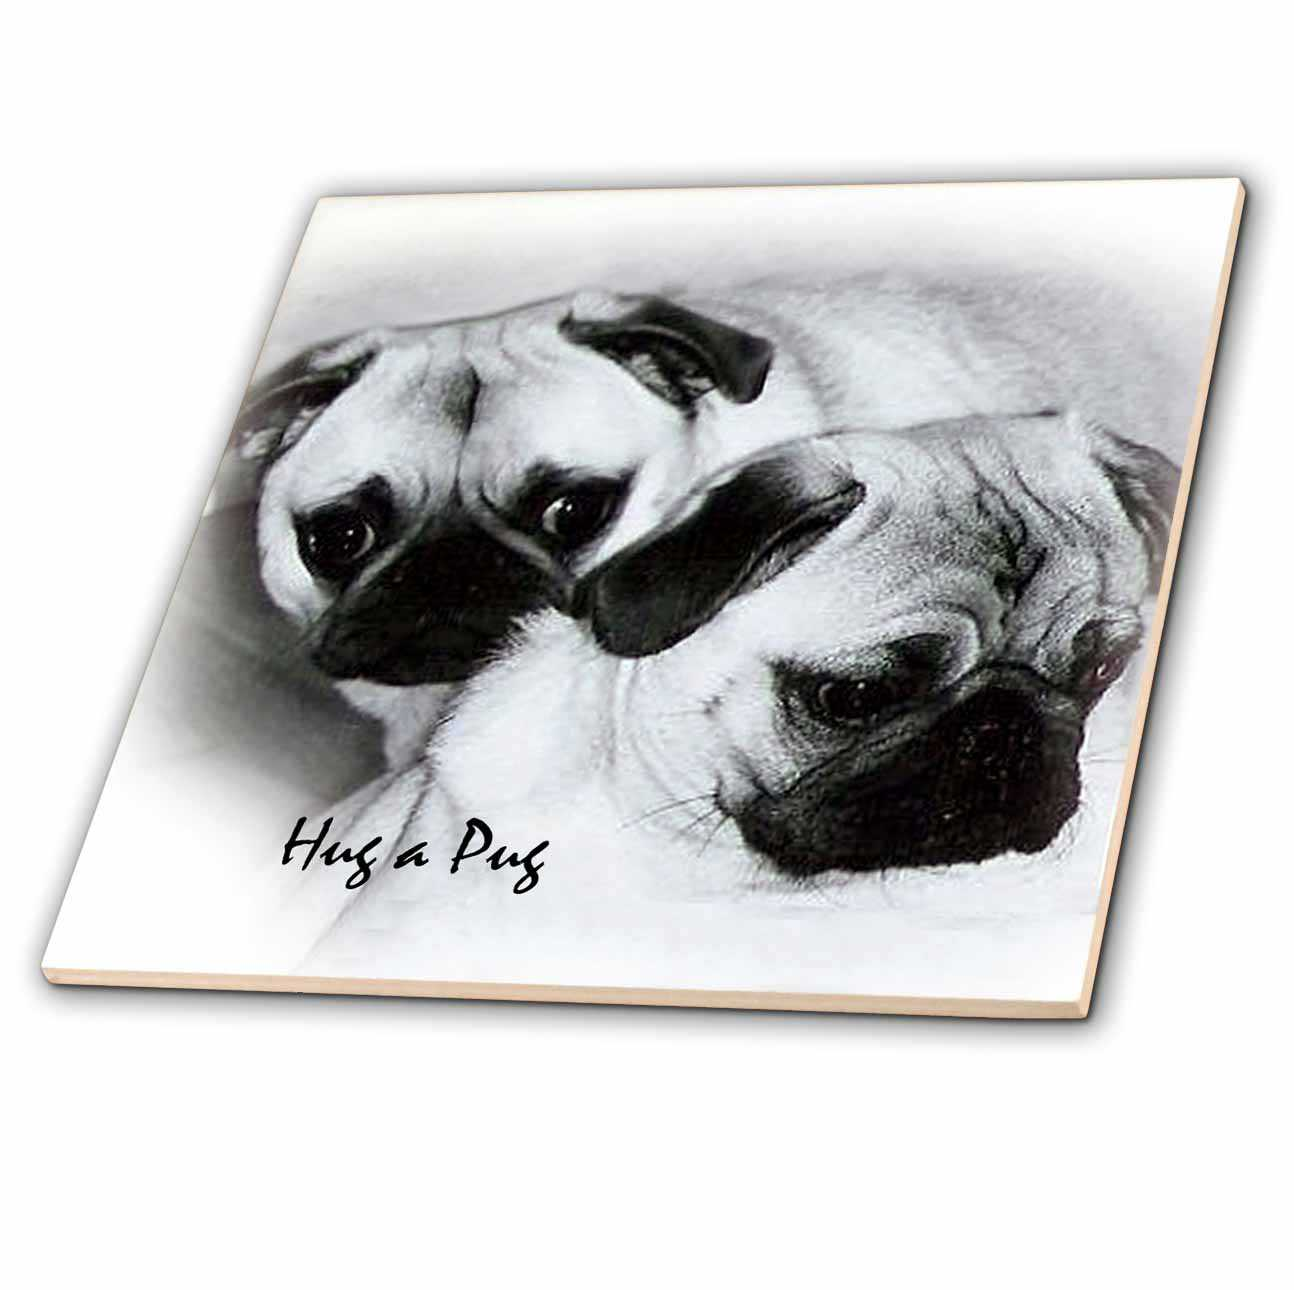 3dRose Hug a Pug Puppies - Ceramic Tile, 6-inch